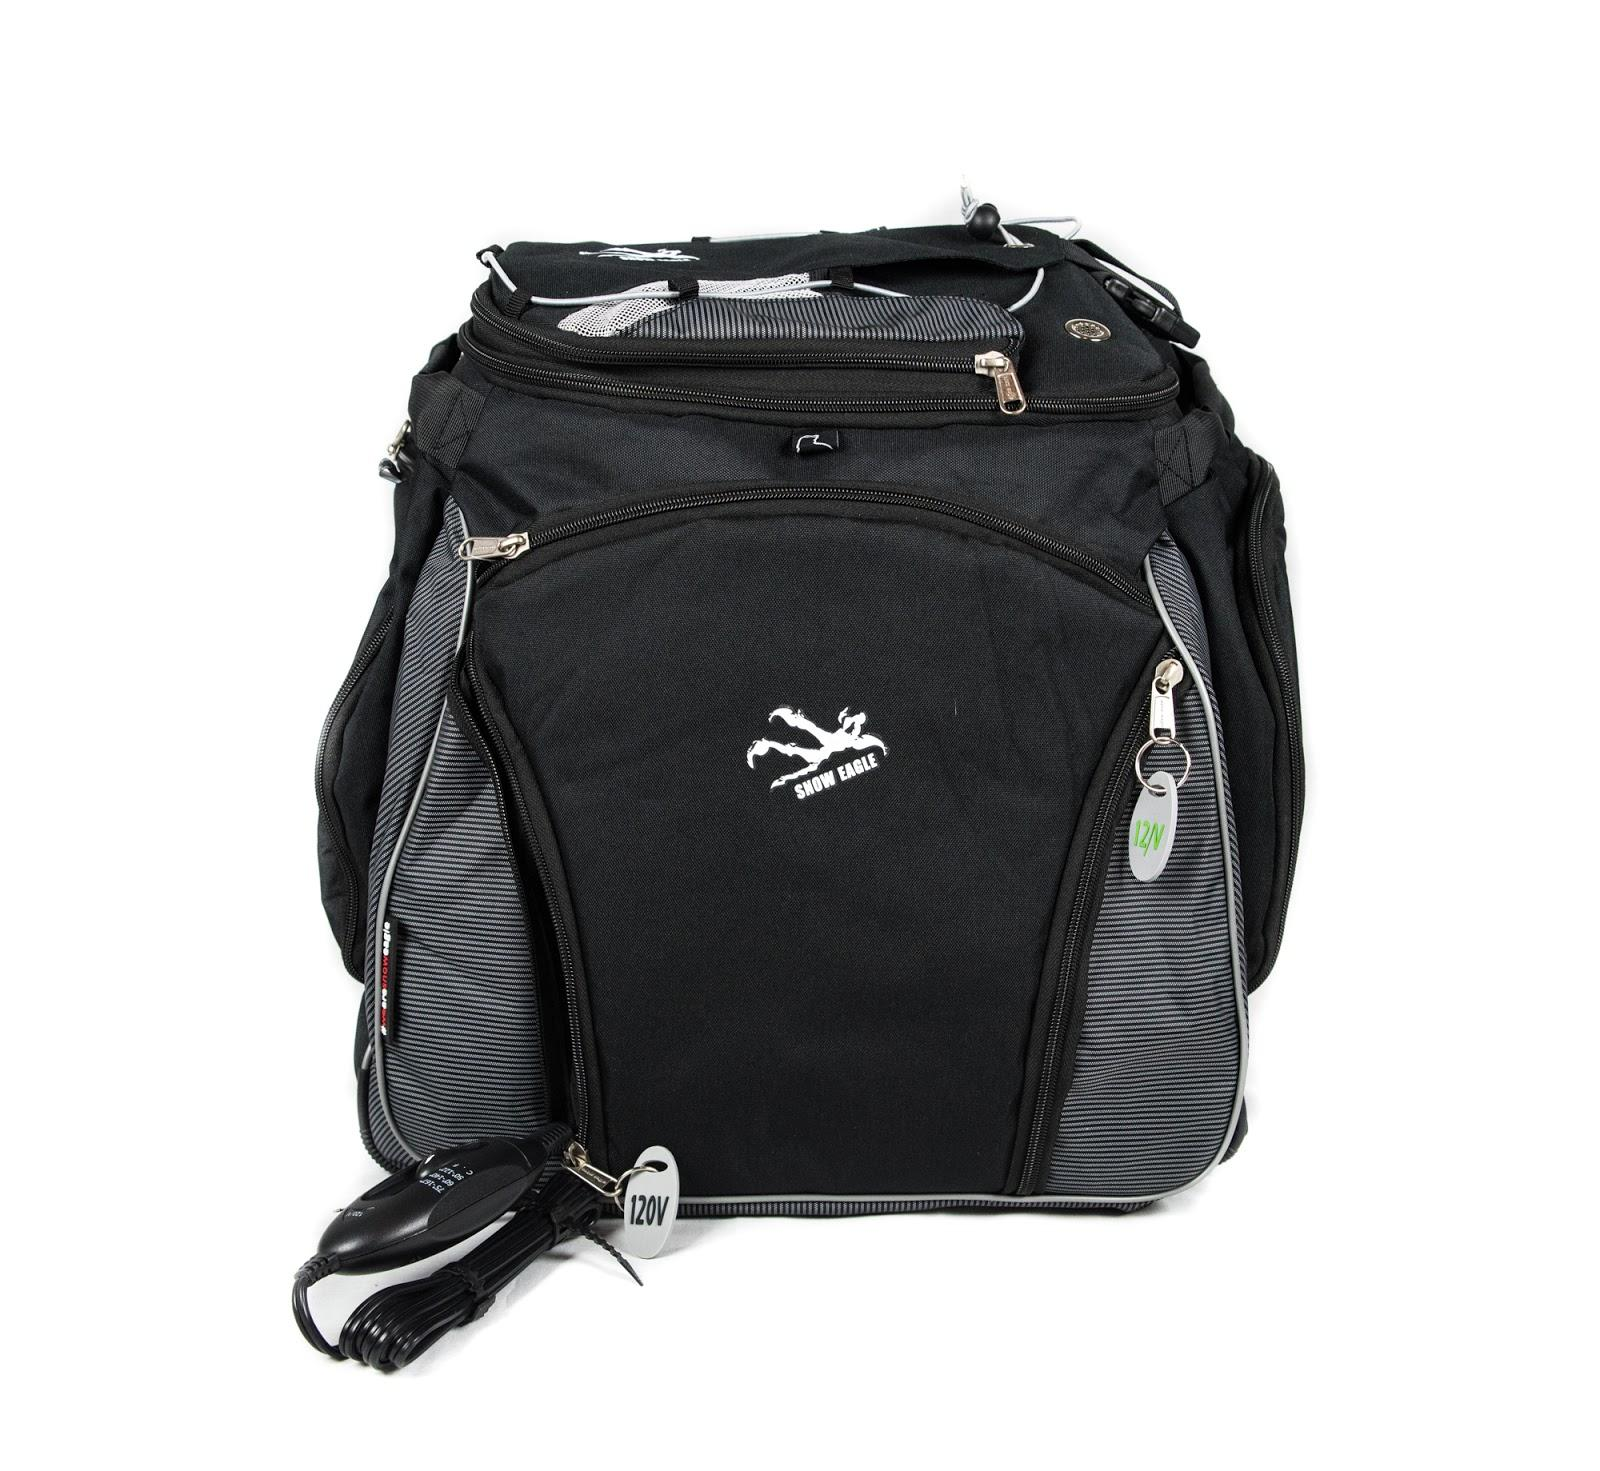 Snow Eagle classic bag main view